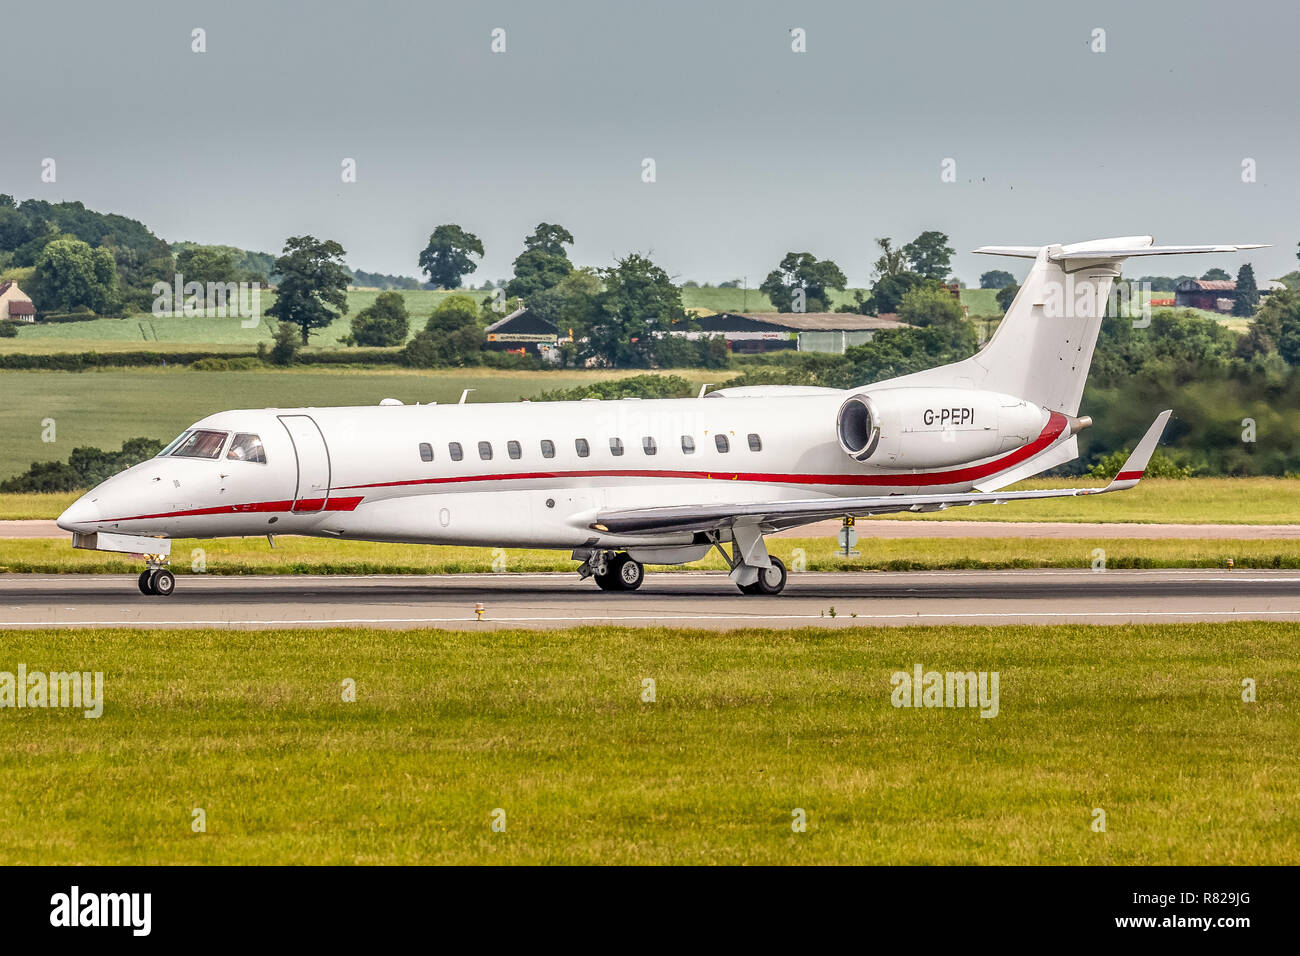 An Embraer Legacy business executive jet plane, registration G-PEPI, taking off from London Luton Airport in England. - Stock Image